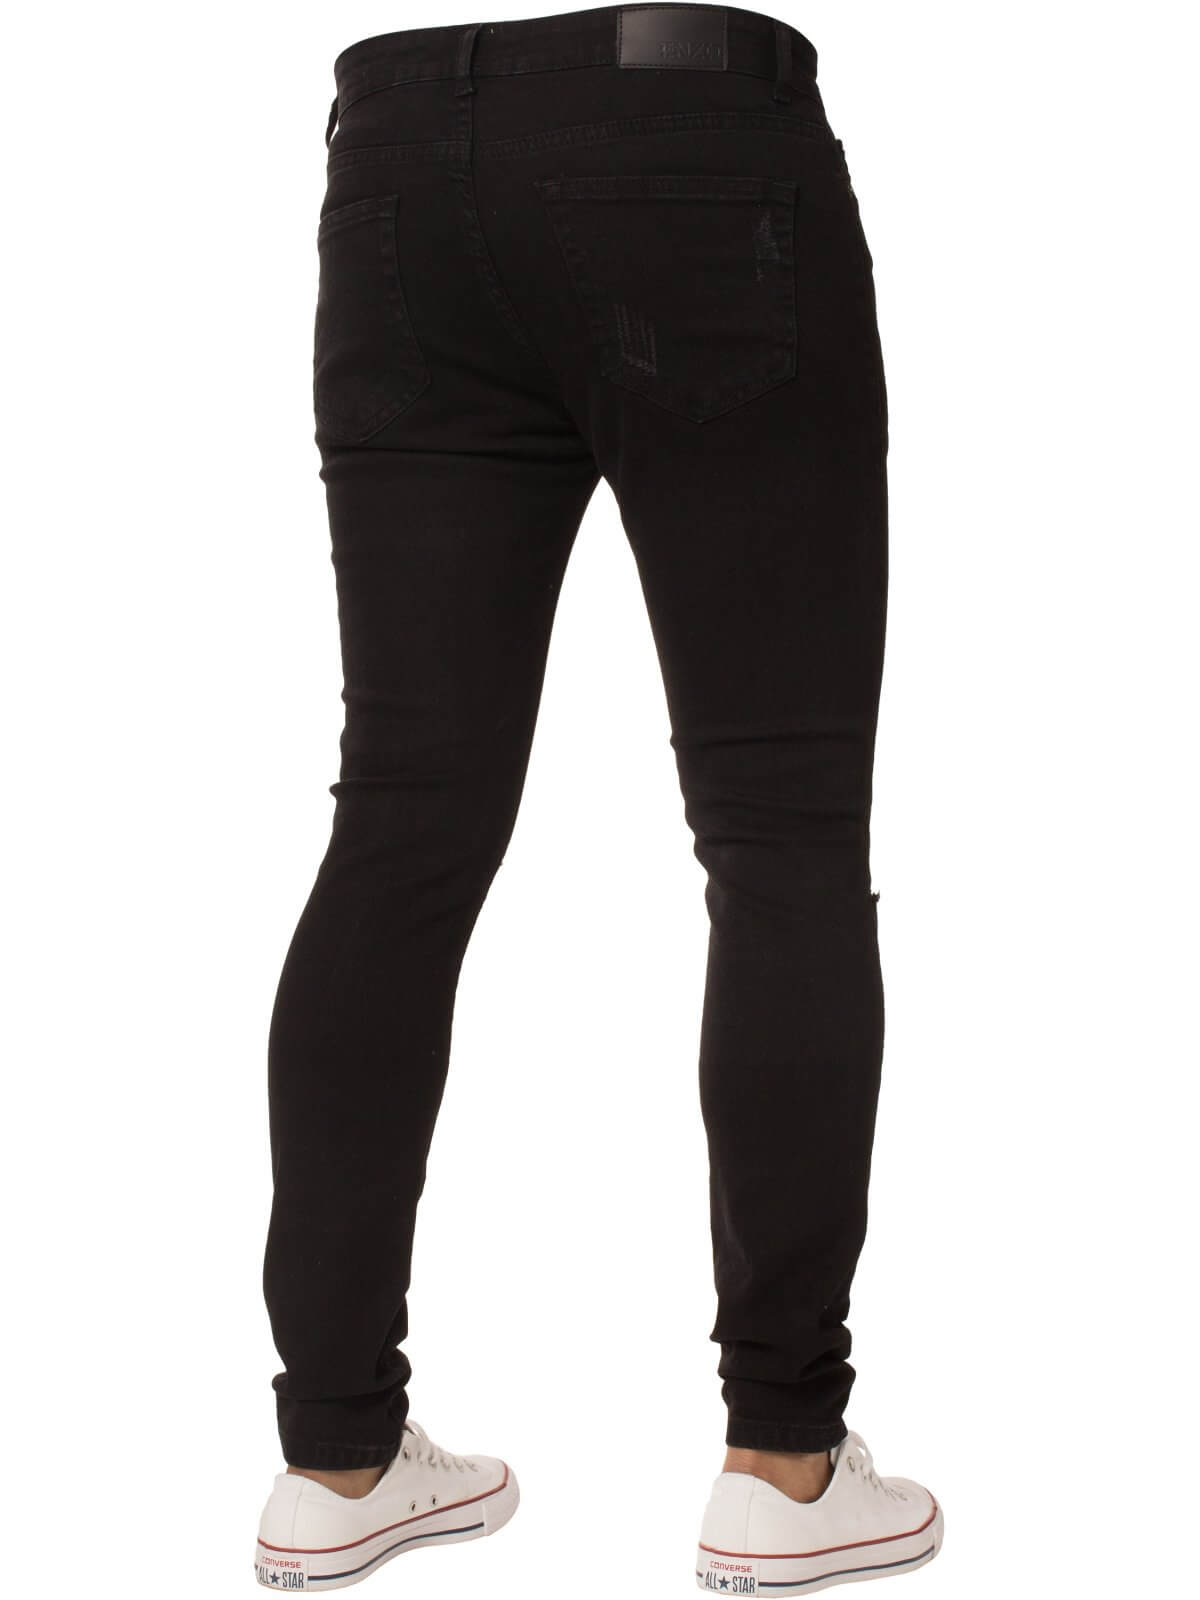 Mens Super Skinny Stretch Ripped Denim Jeans | Enzo Designer Menswear